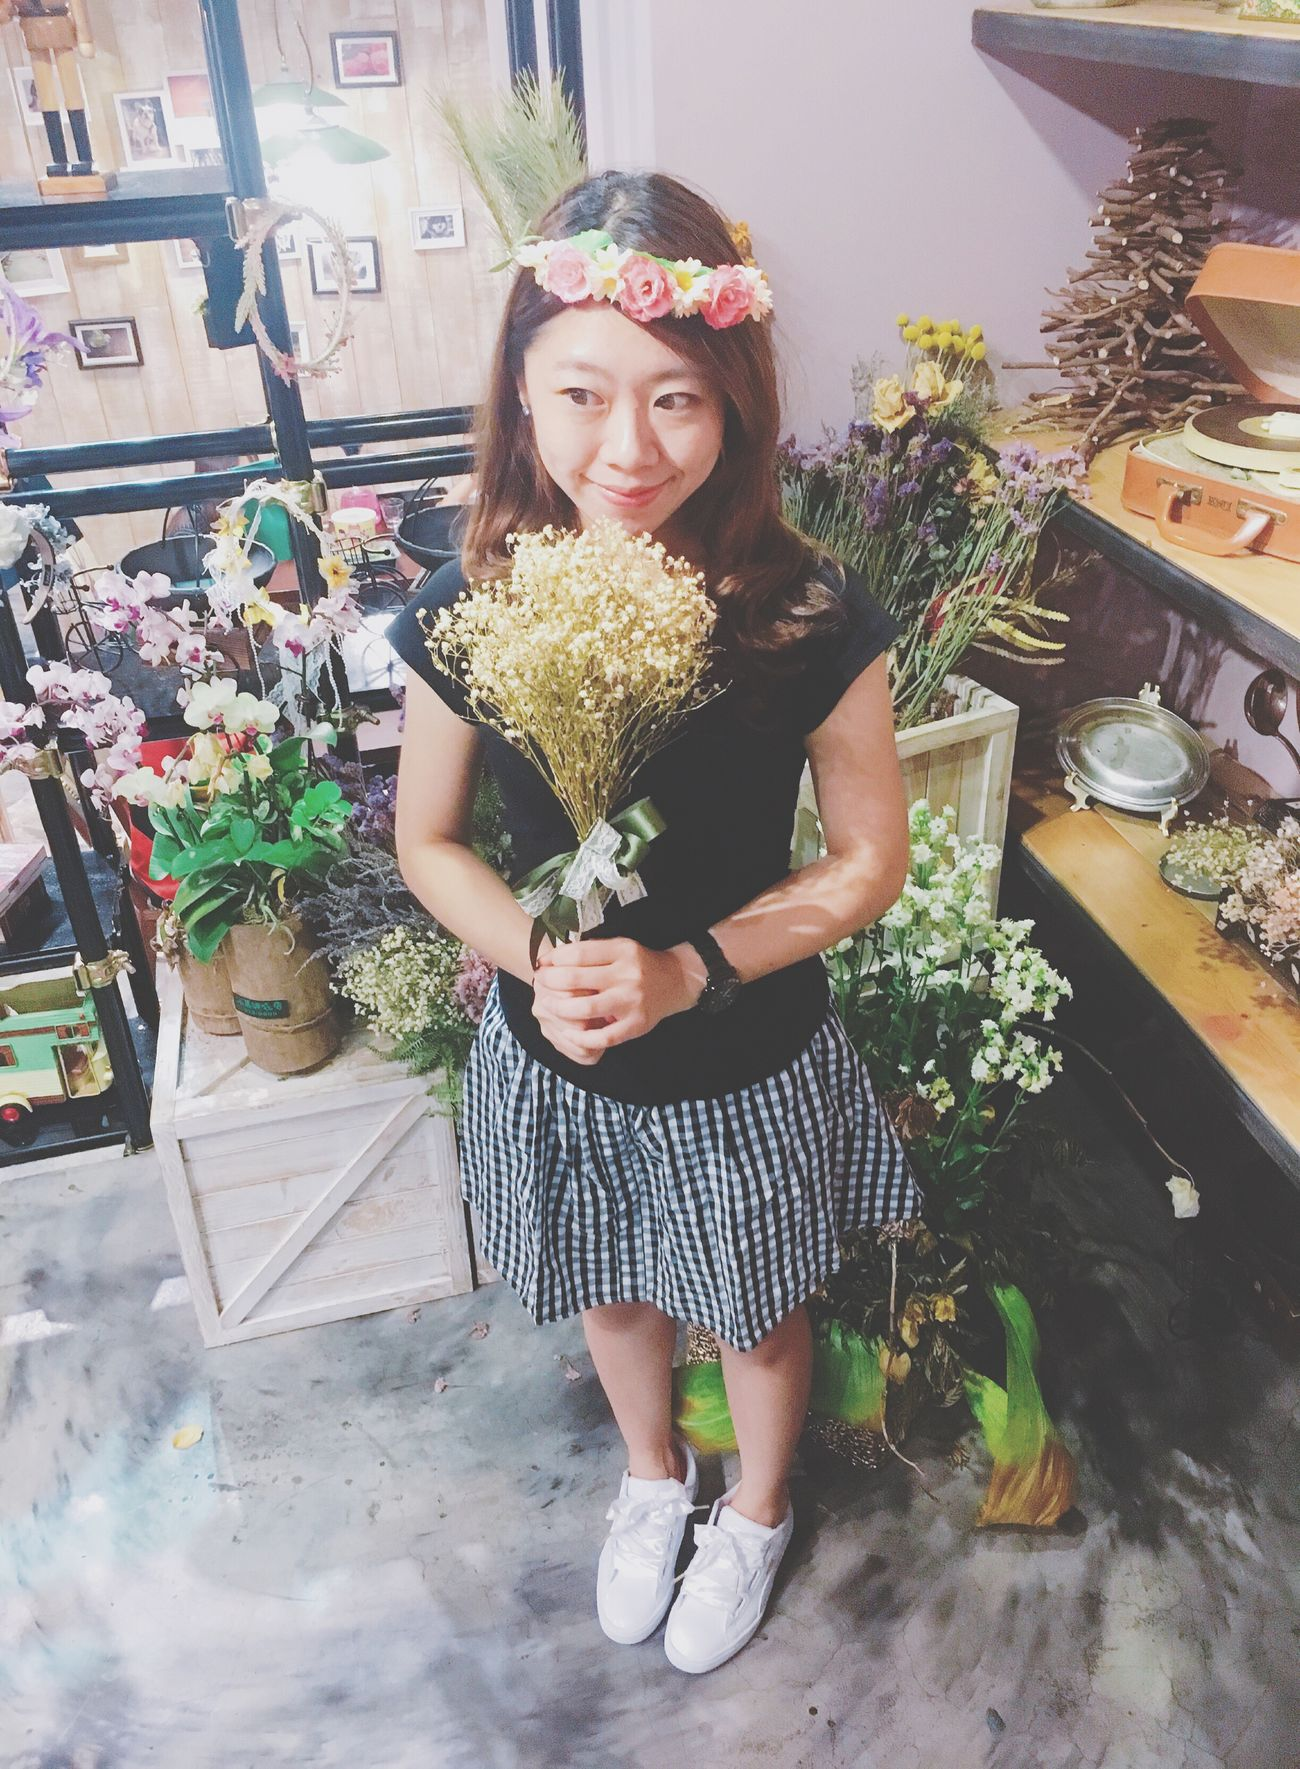 Flower Shop Beautiful Woman Mylife Dinnertime Adults Only Standing Front View Indoors